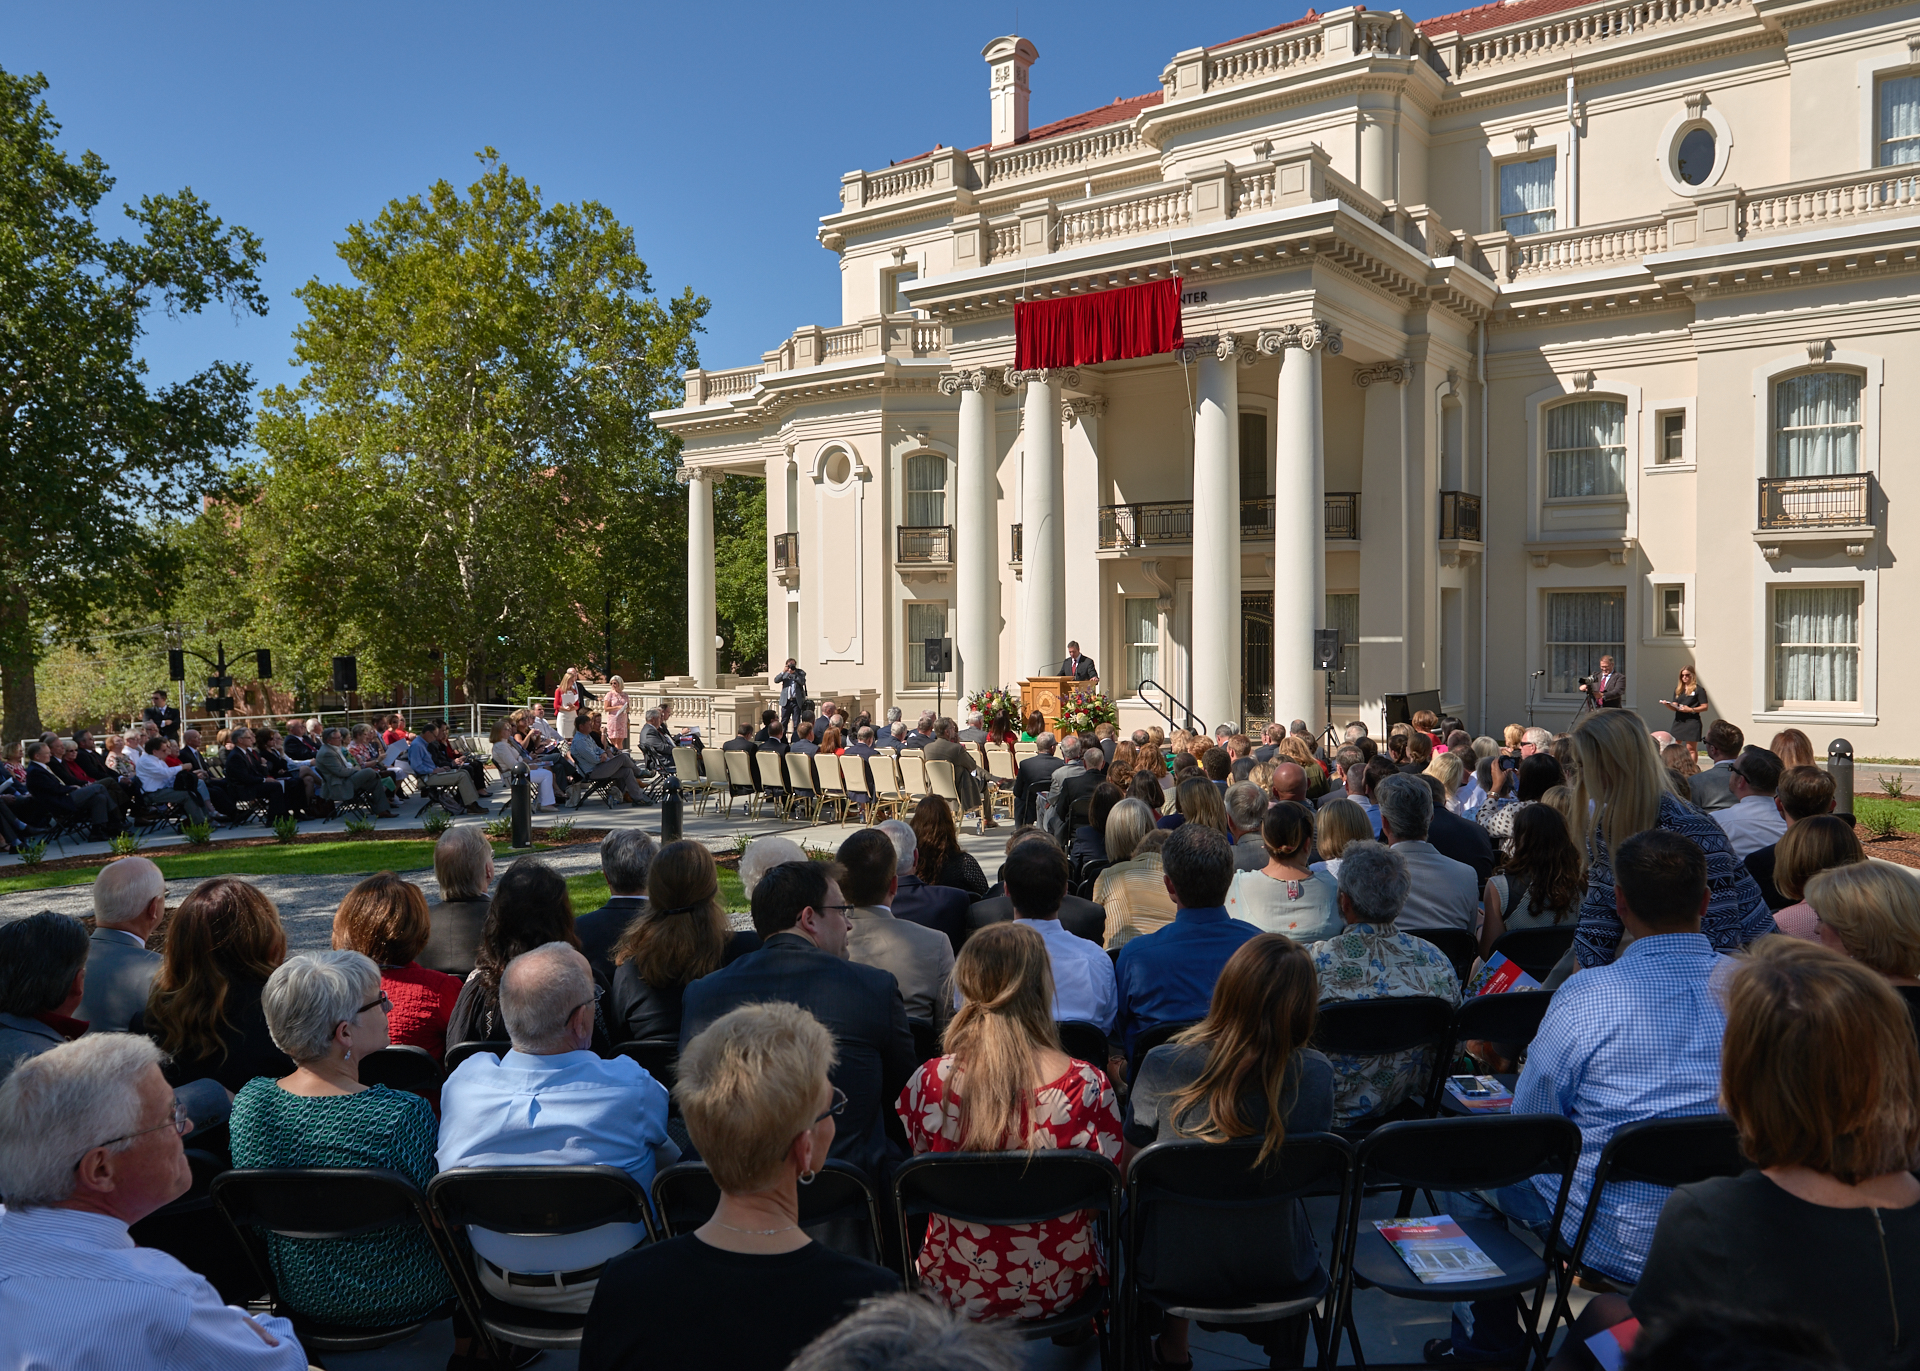 Unveiling event of the University of Utah's new Thomas S. Monson Center.